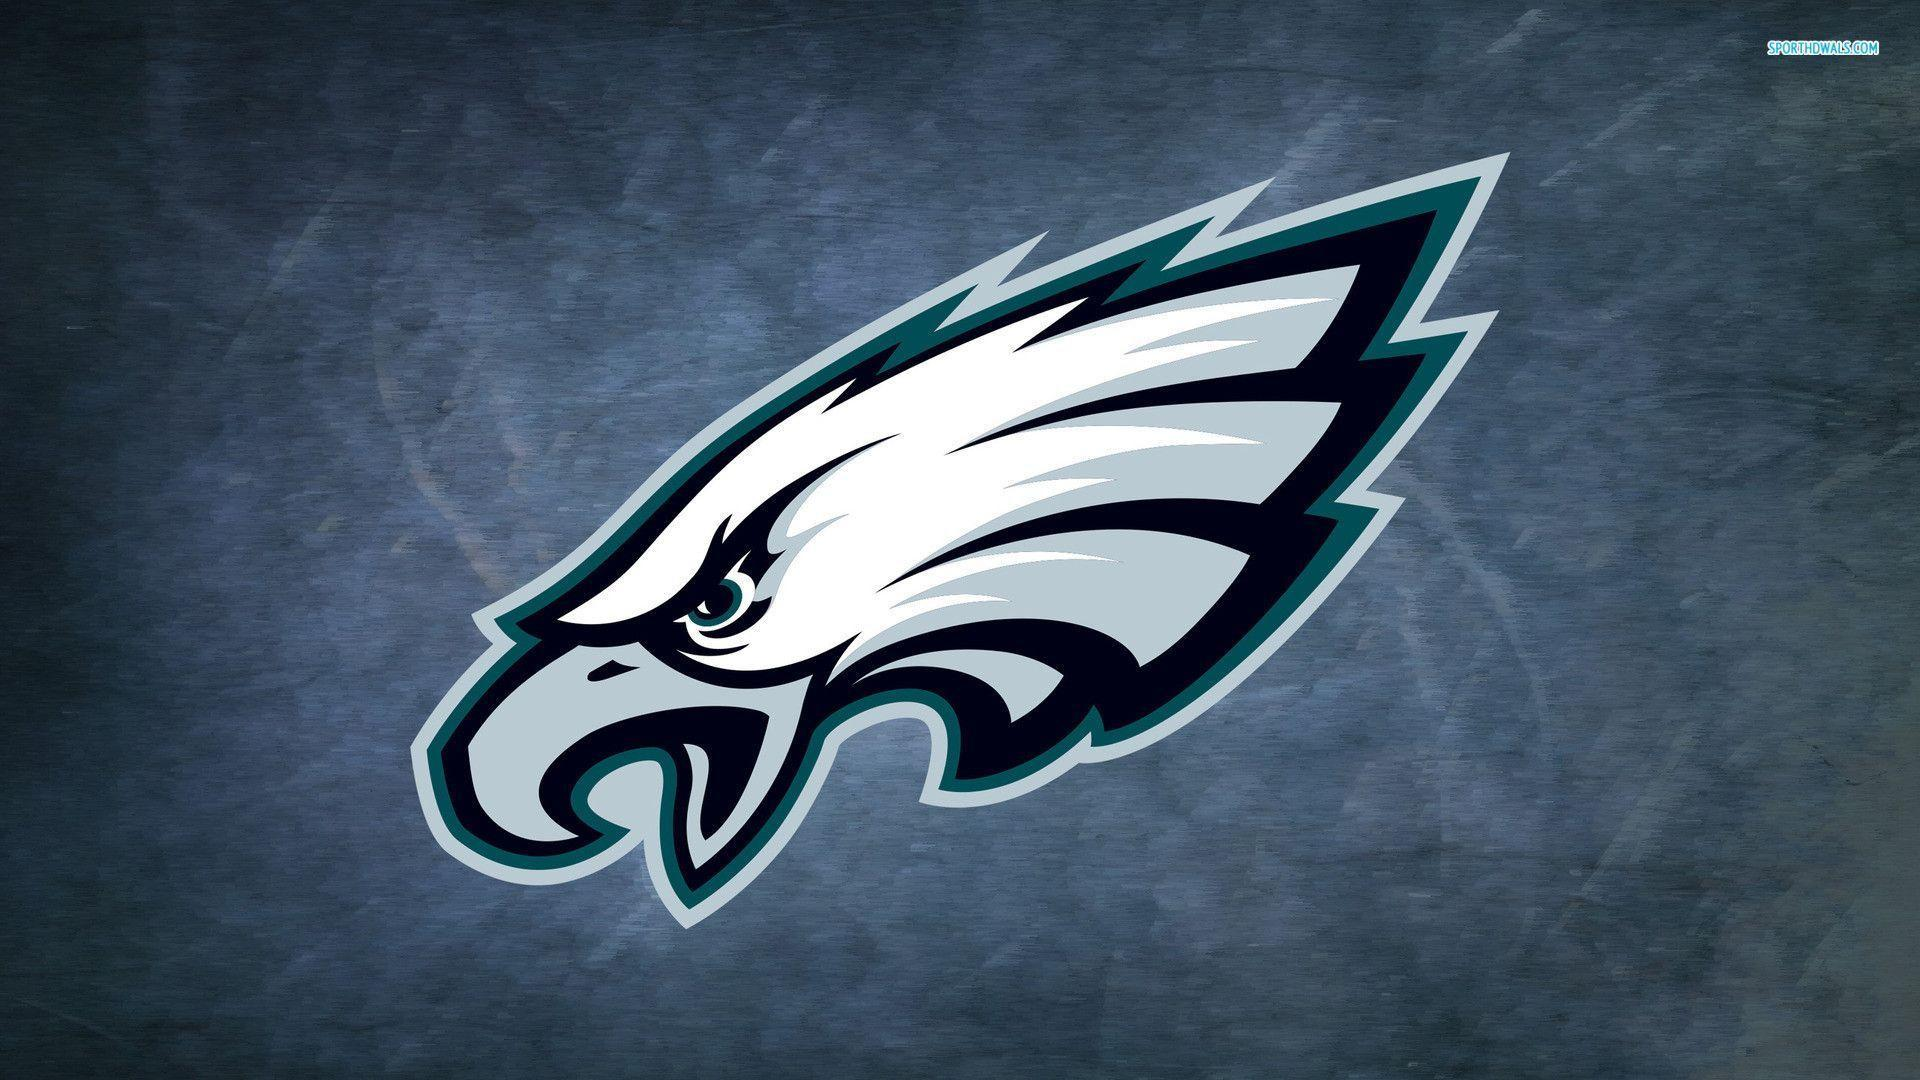 2014 Philadelphia Eagles Wallpaper | Wallpaperwonder